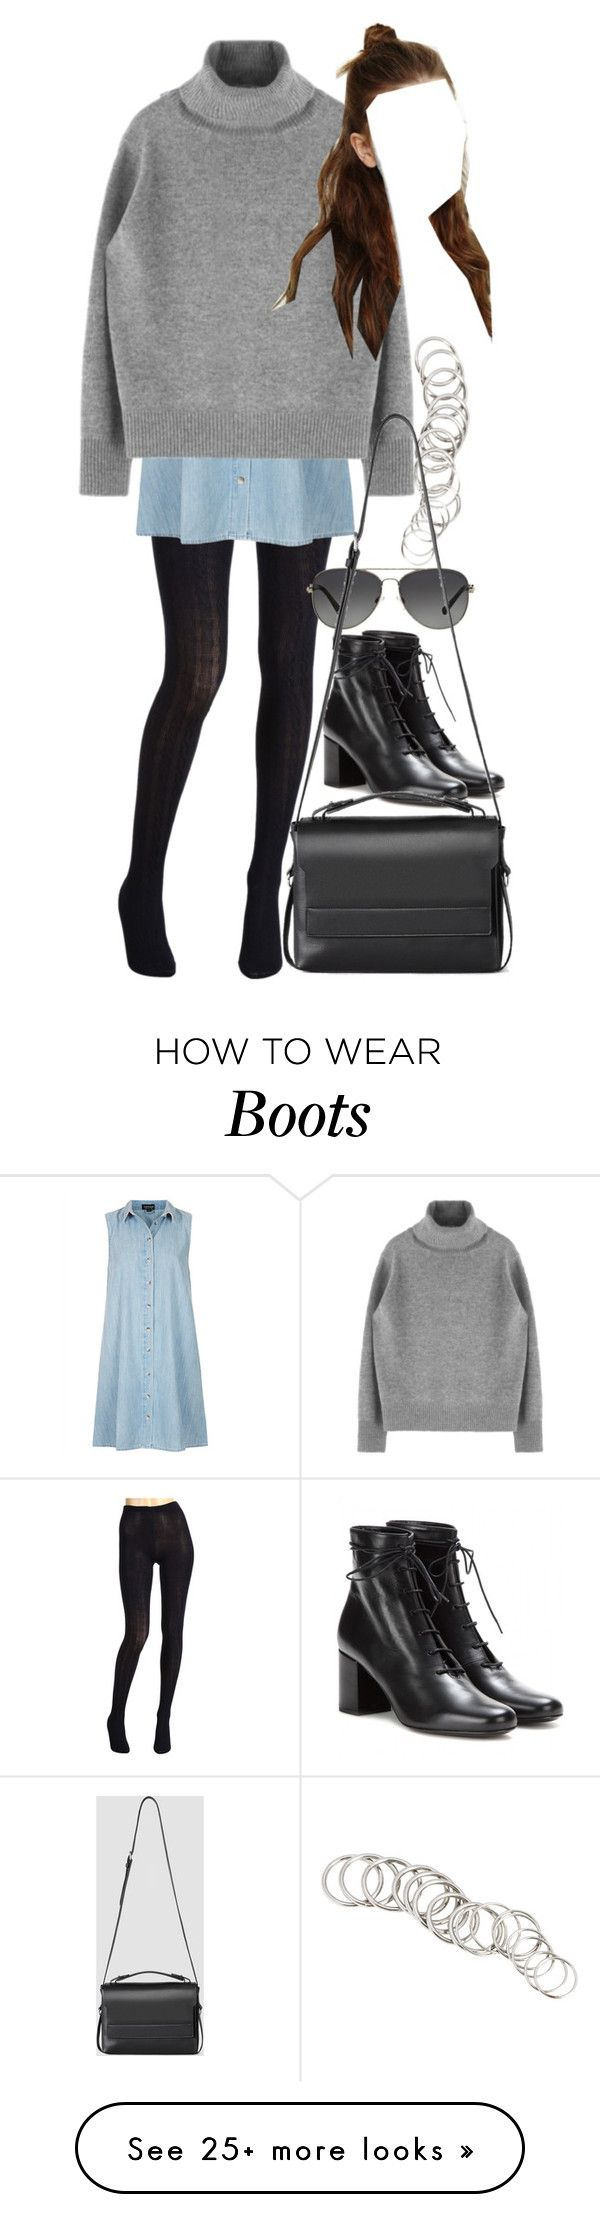 """Untitled #8089"" by nikka-phillips on Polyvore featuring Hue, Topshop, H&M, Michael Kors, Yves Saint Laurent and AllSaints"